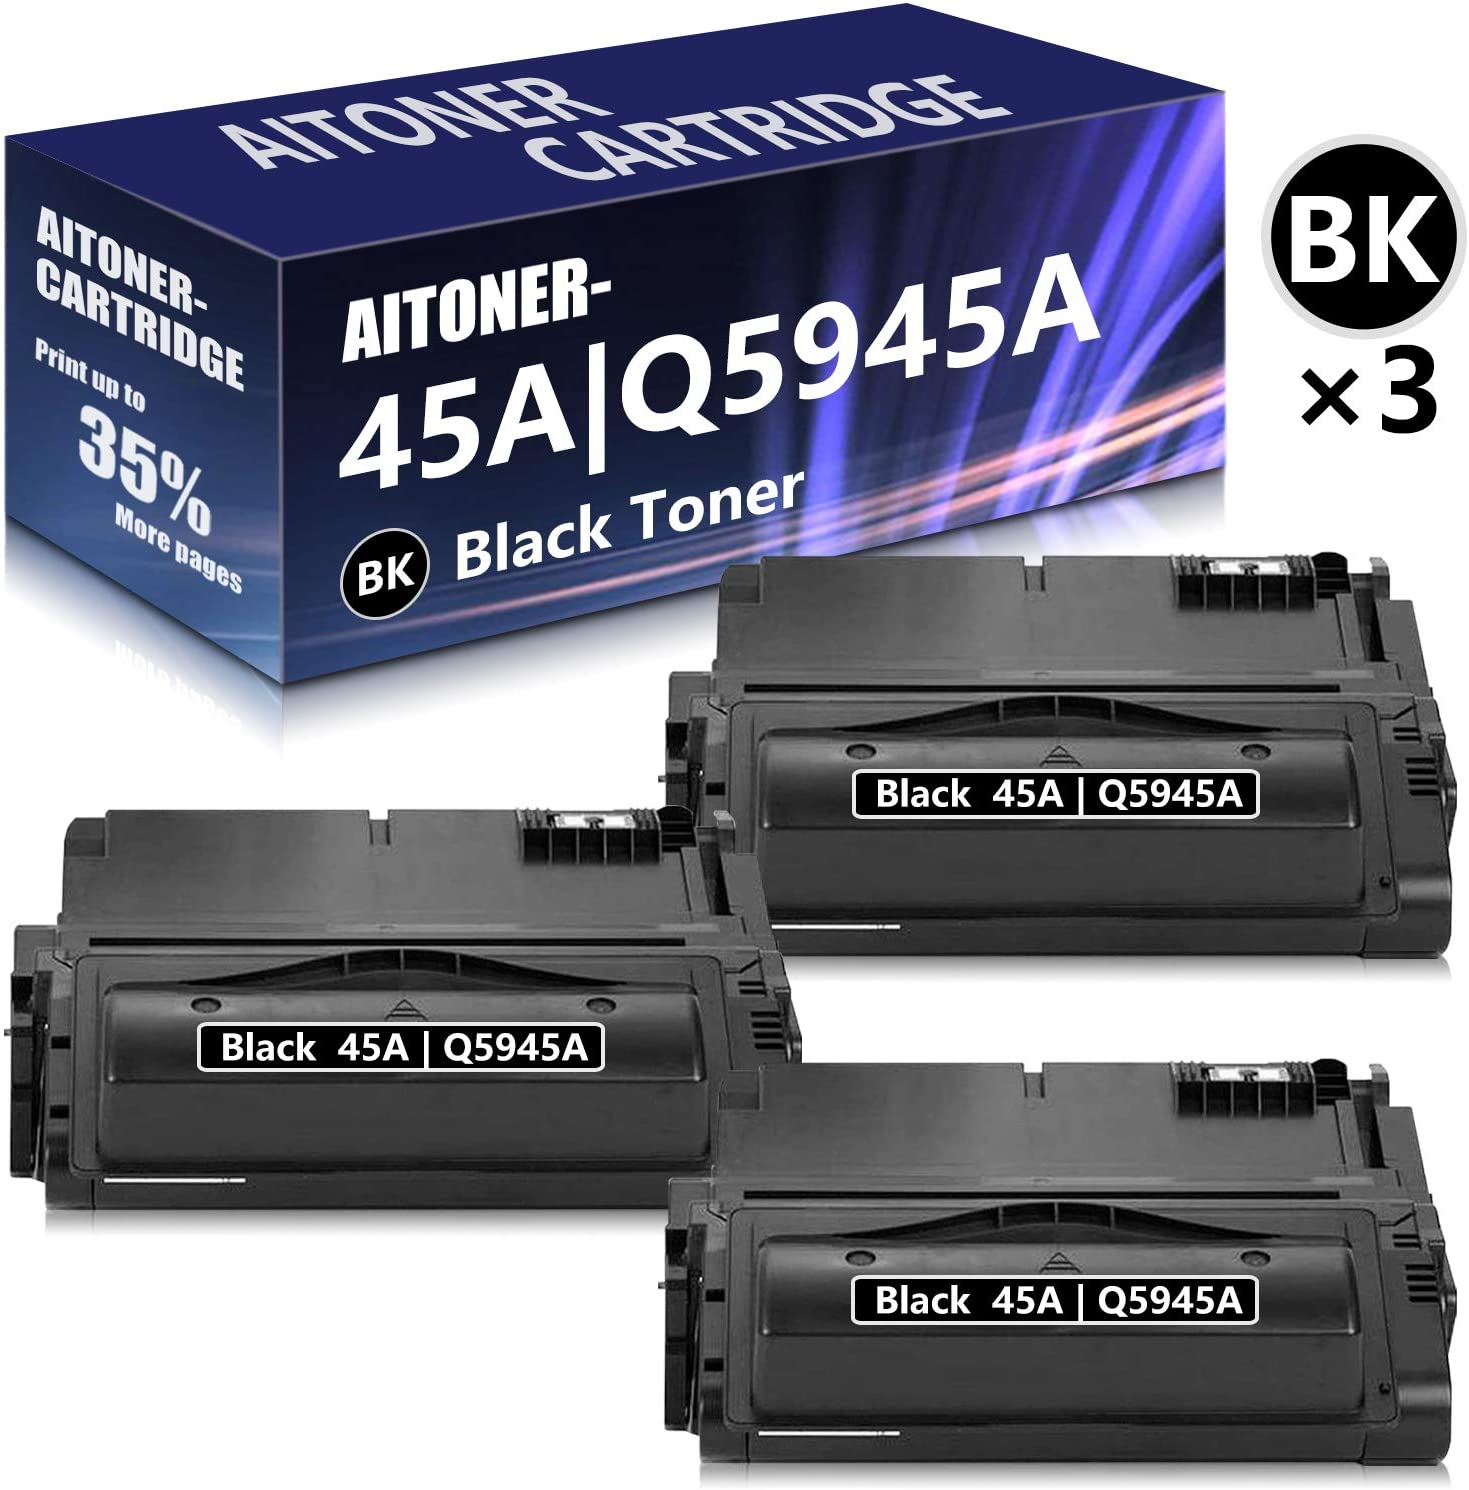 3 Pack Black Compatible for HP 45A | Q5945A Toner Cartridge Replacement for HP Laserjet 4350DTN 4345MFP 4200 4200N 4300 4300N 4300TN 4300DTN 4240 4250 4250N 4350 4350N 4350TN Printer Toner Cartridge.